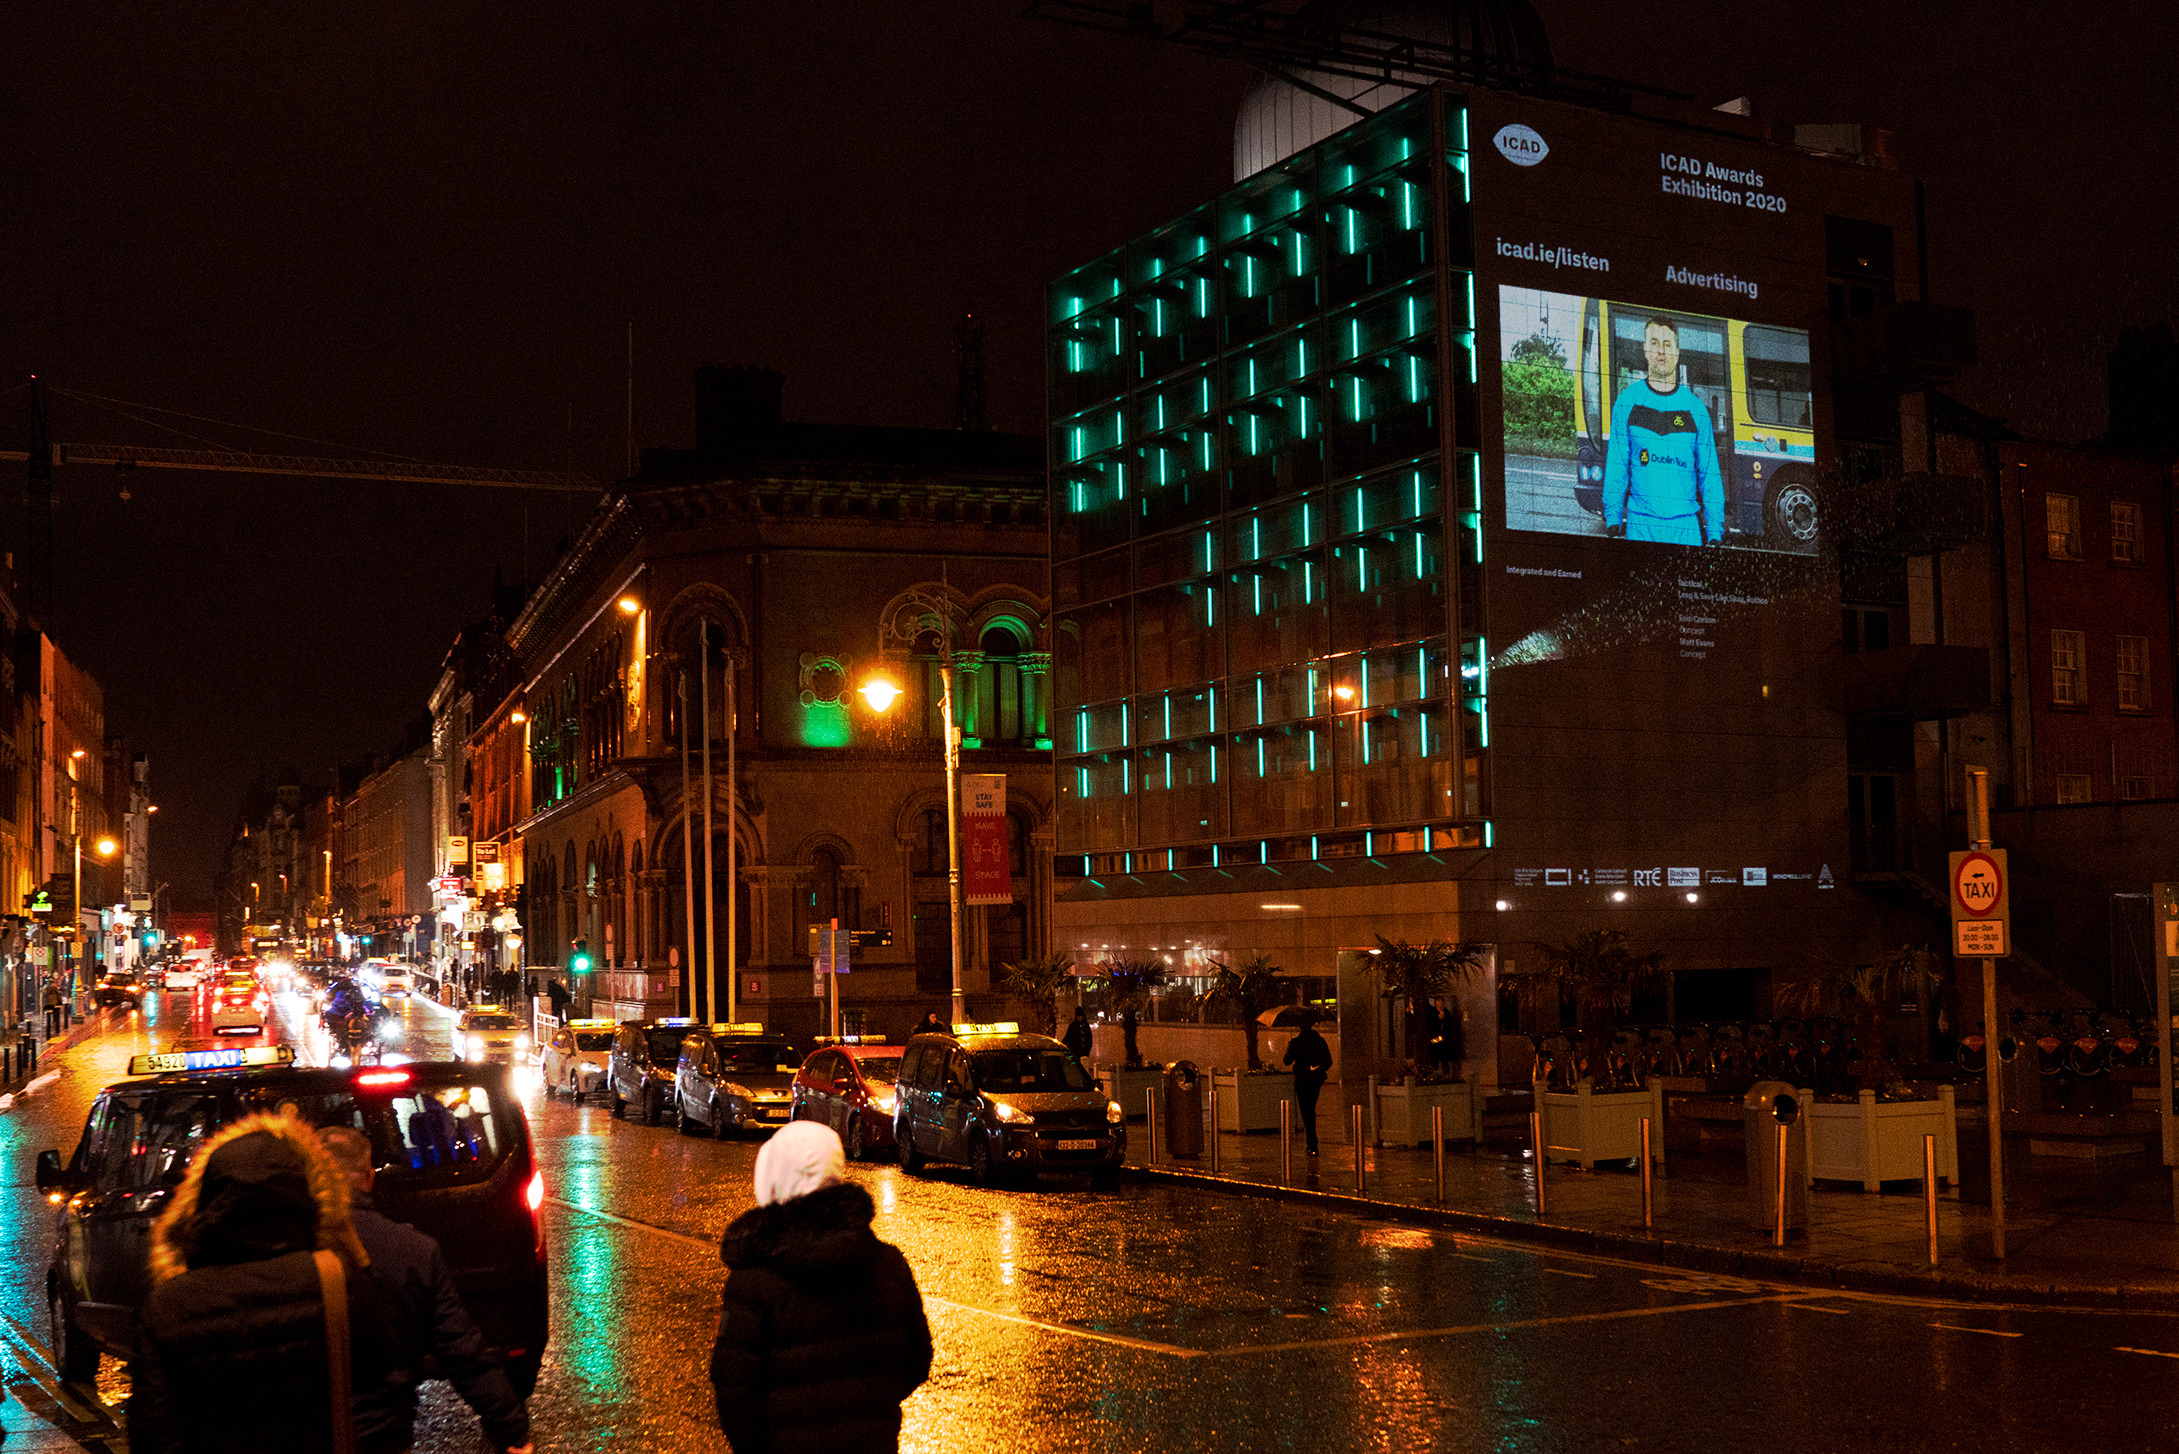 The ICAD projections in Dublin